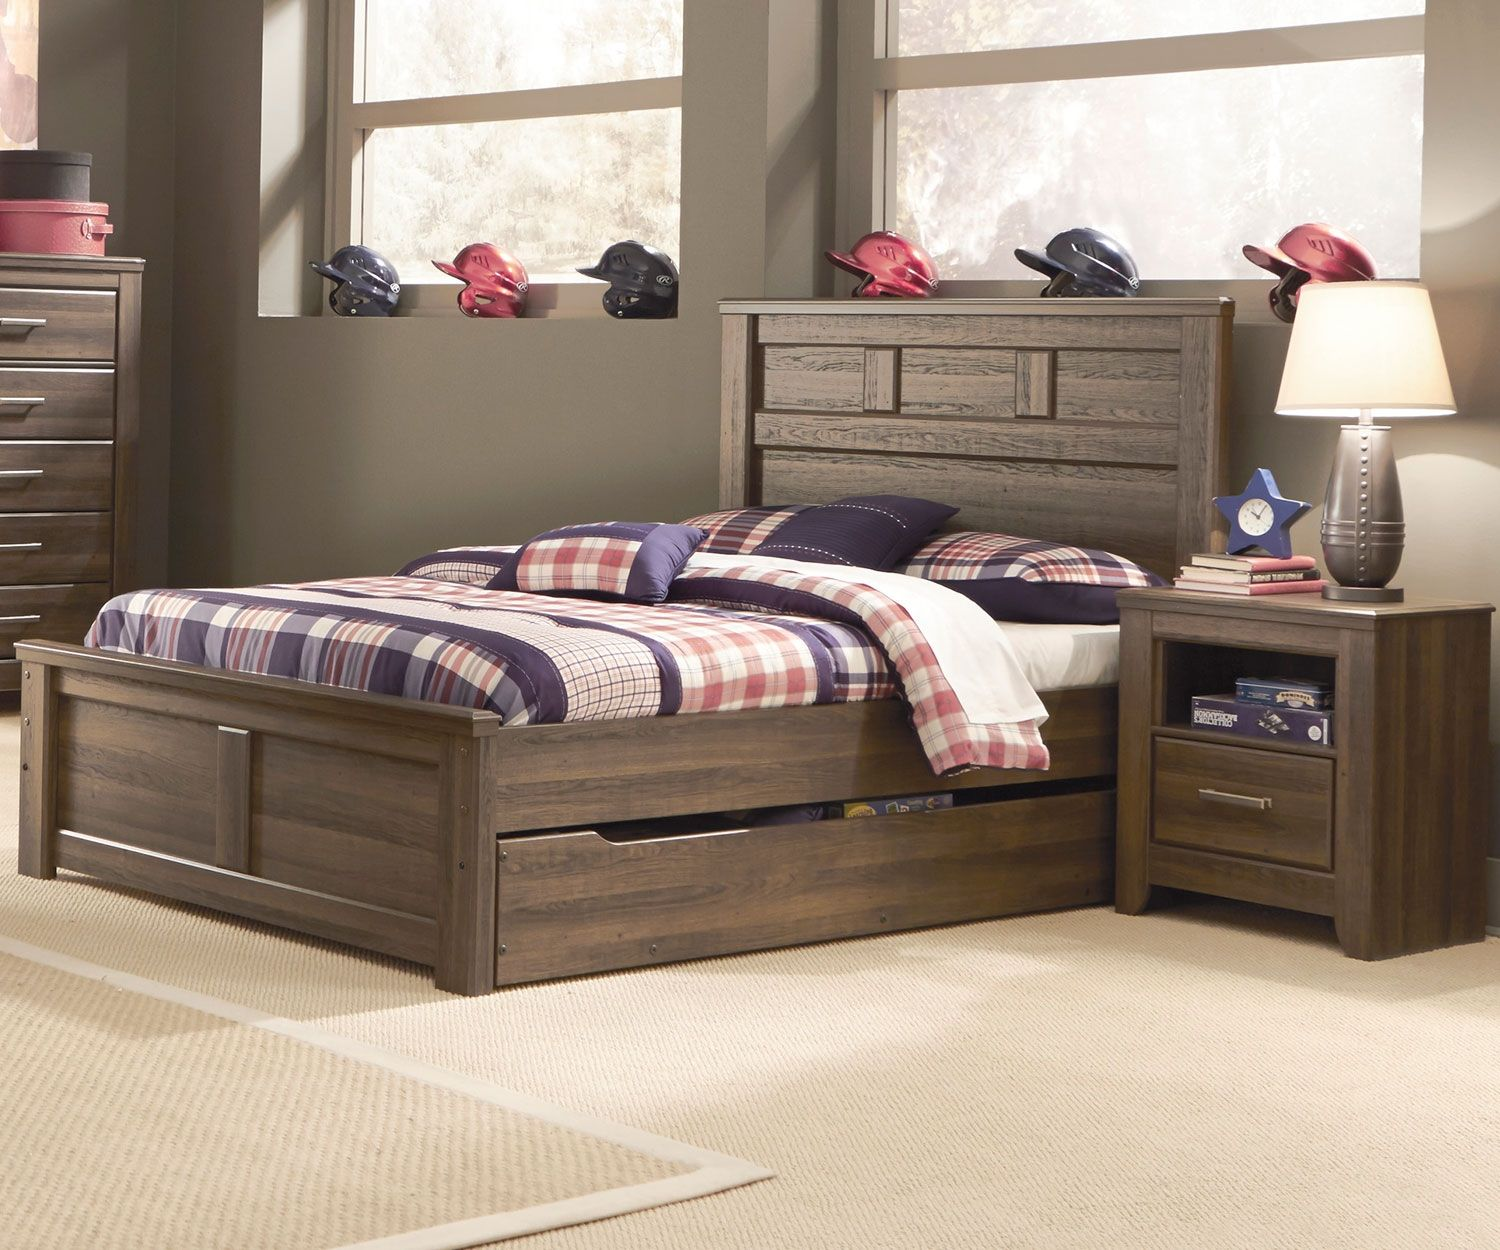 B251 Juararo Trundle Bed | Boys full size trundle beds ...